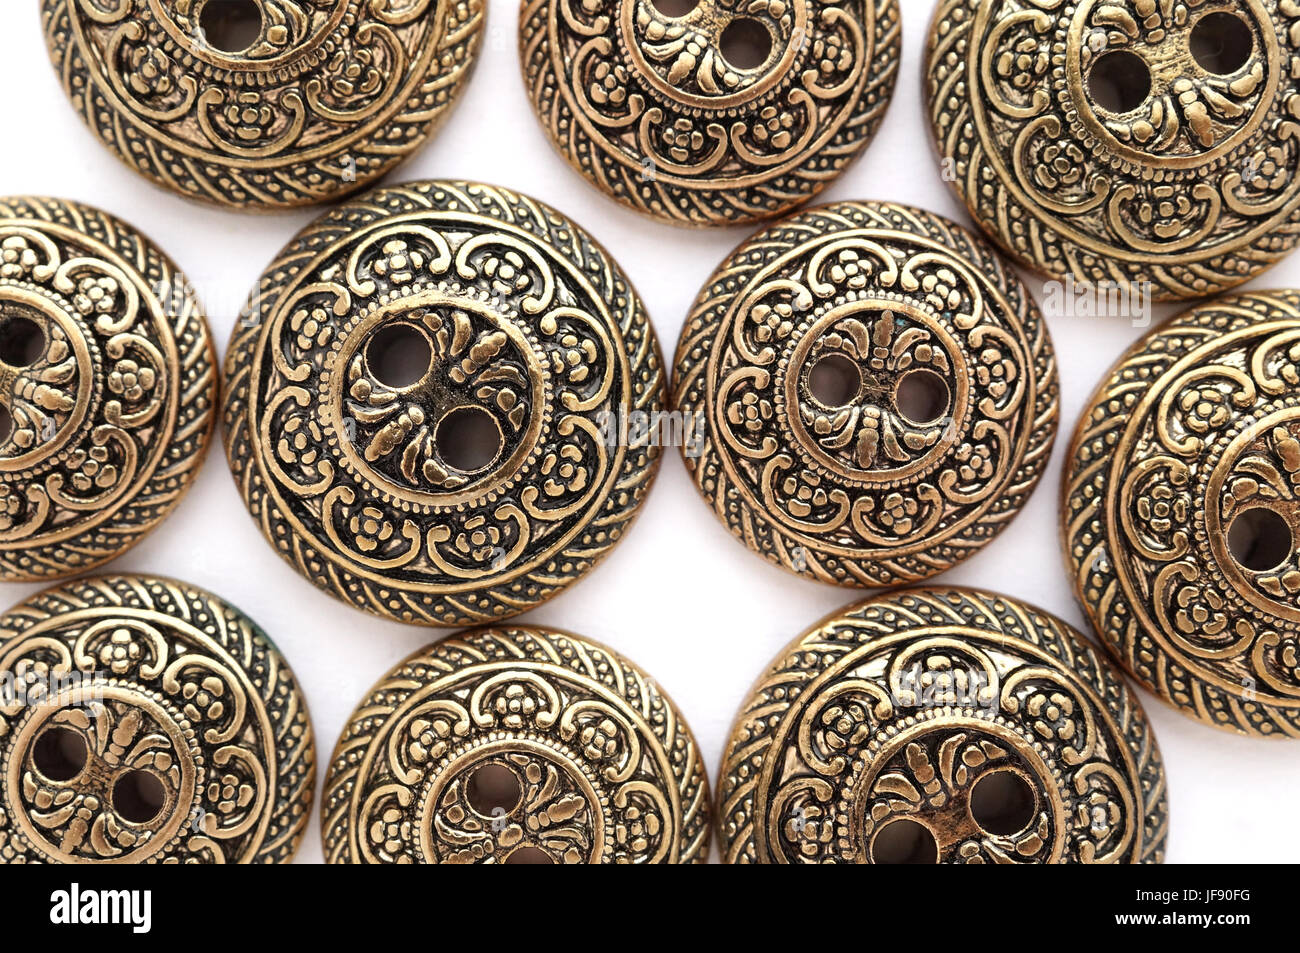 Bronze buttons with baroque pattern, two sizes mix - Stock Image